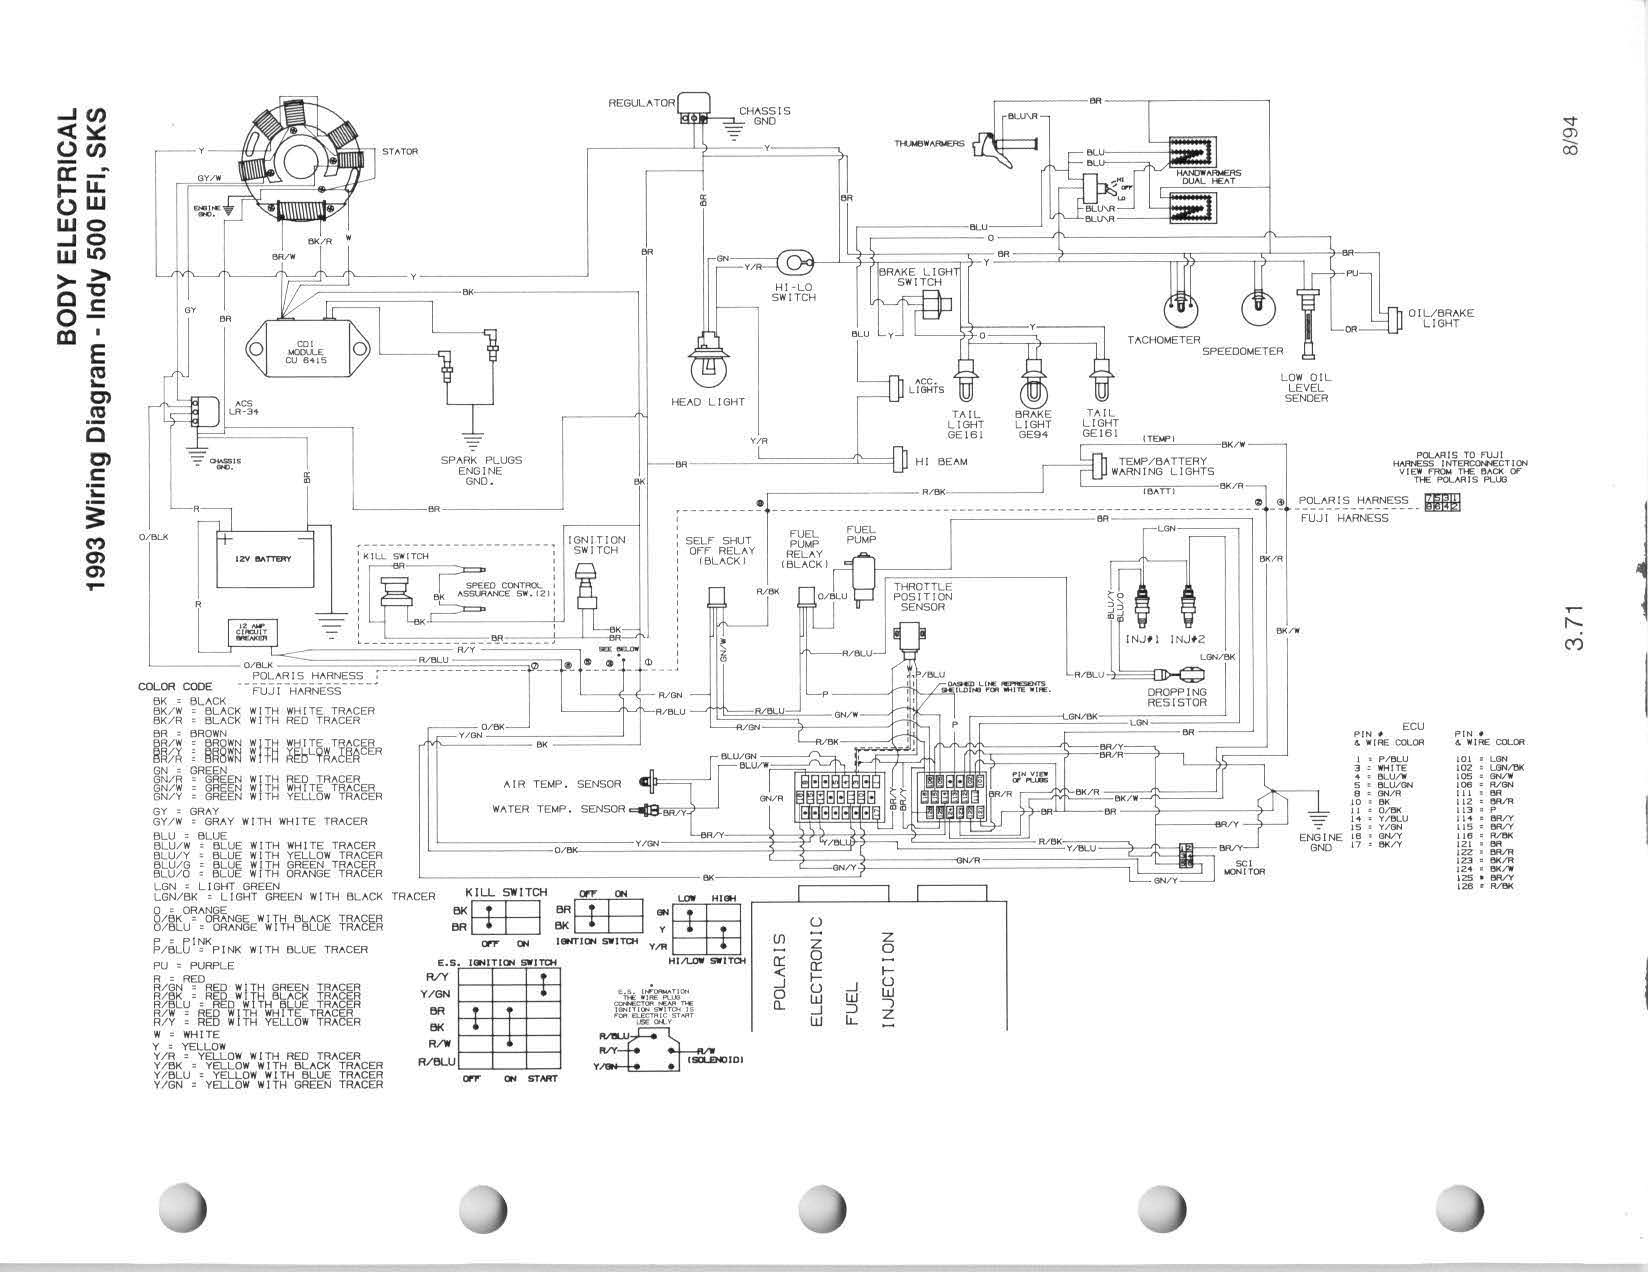 2004 polaris ranger 500 wiring diagram Collection-Full Size of Wiring Diagram Polaris Ranger Xp Wiring Diagram Picture Ideas 21 2007 14-b